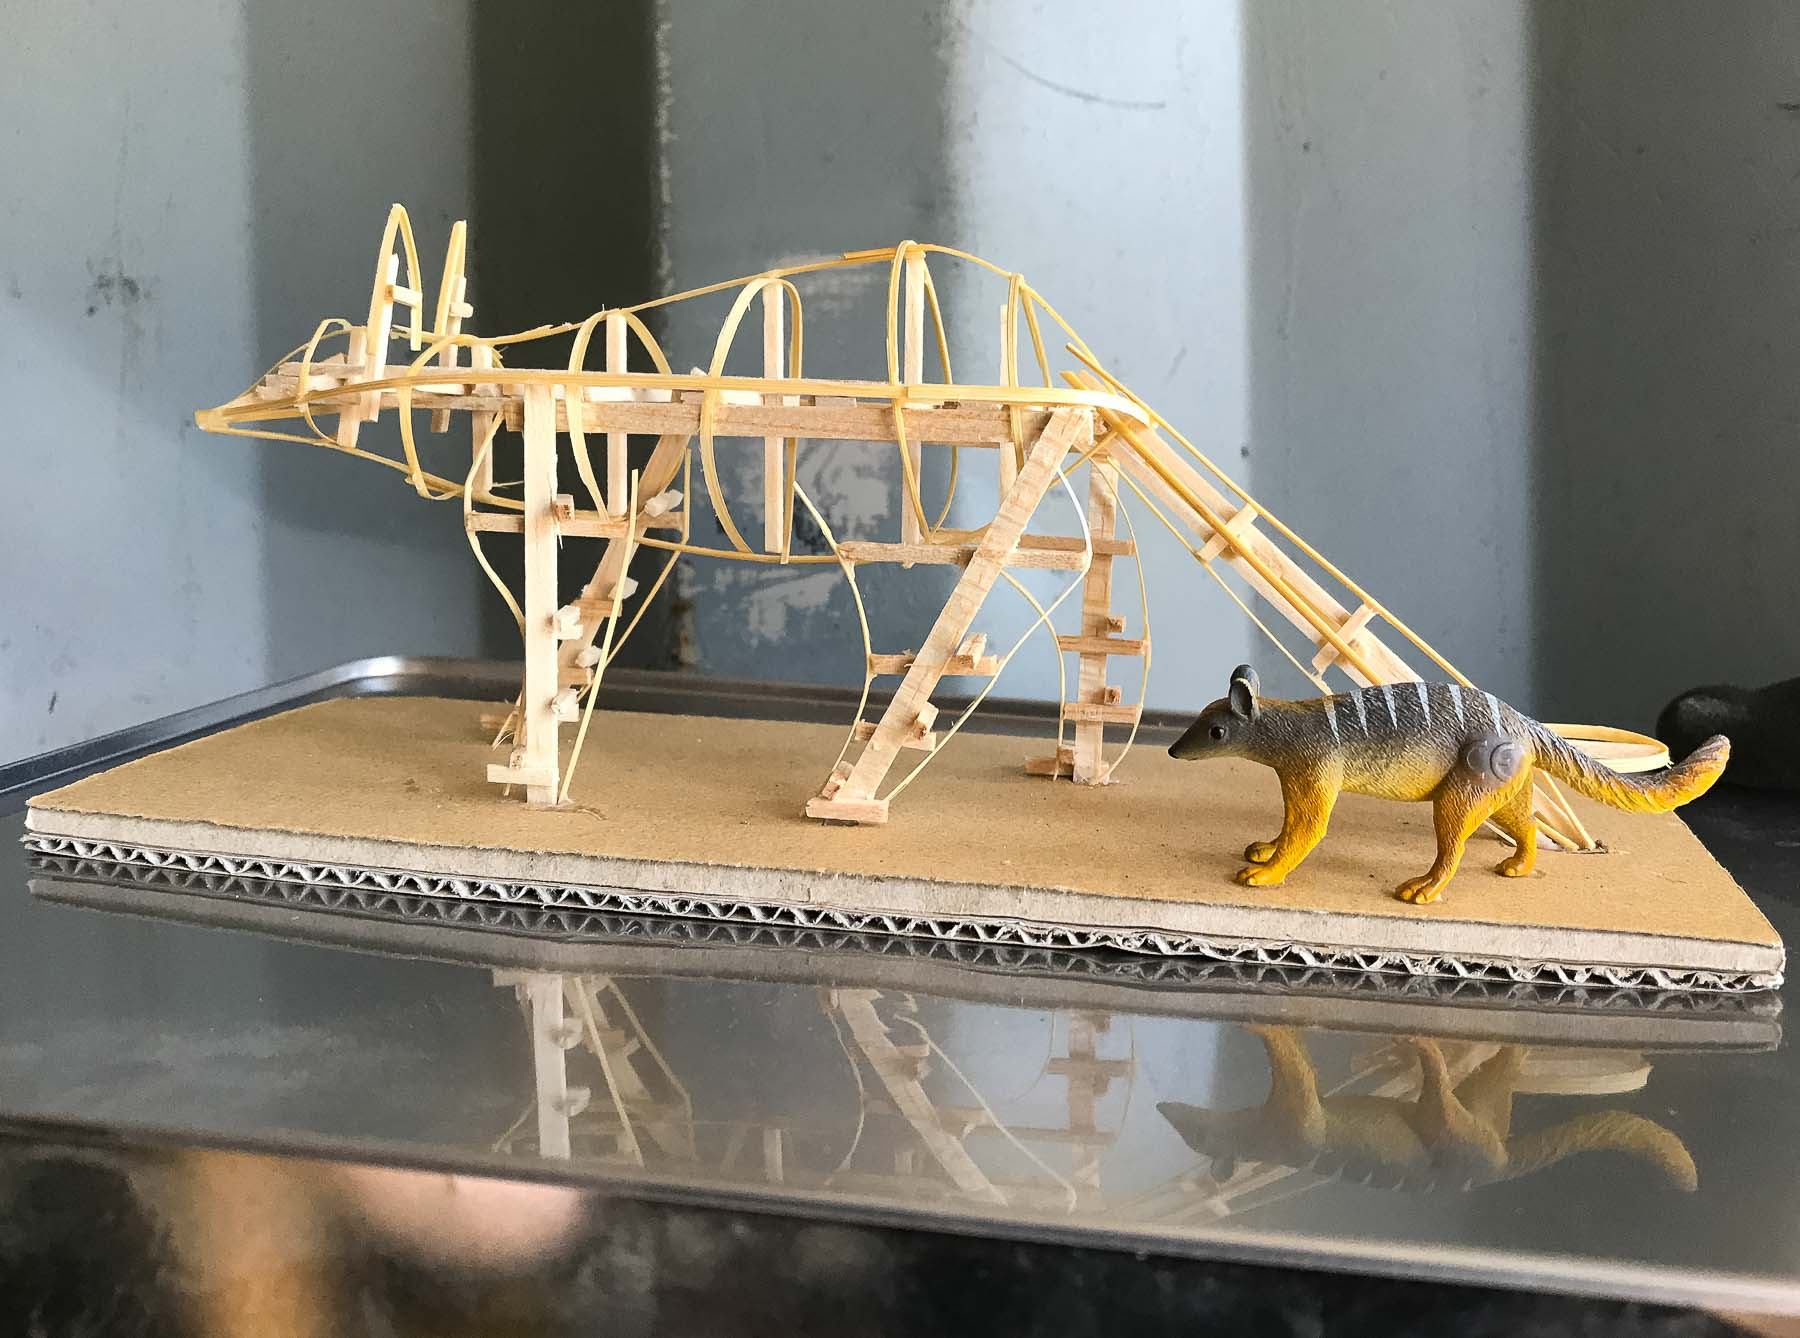 Photo of scale model of numbat sculpture framework. Photo by Caro Telfer.